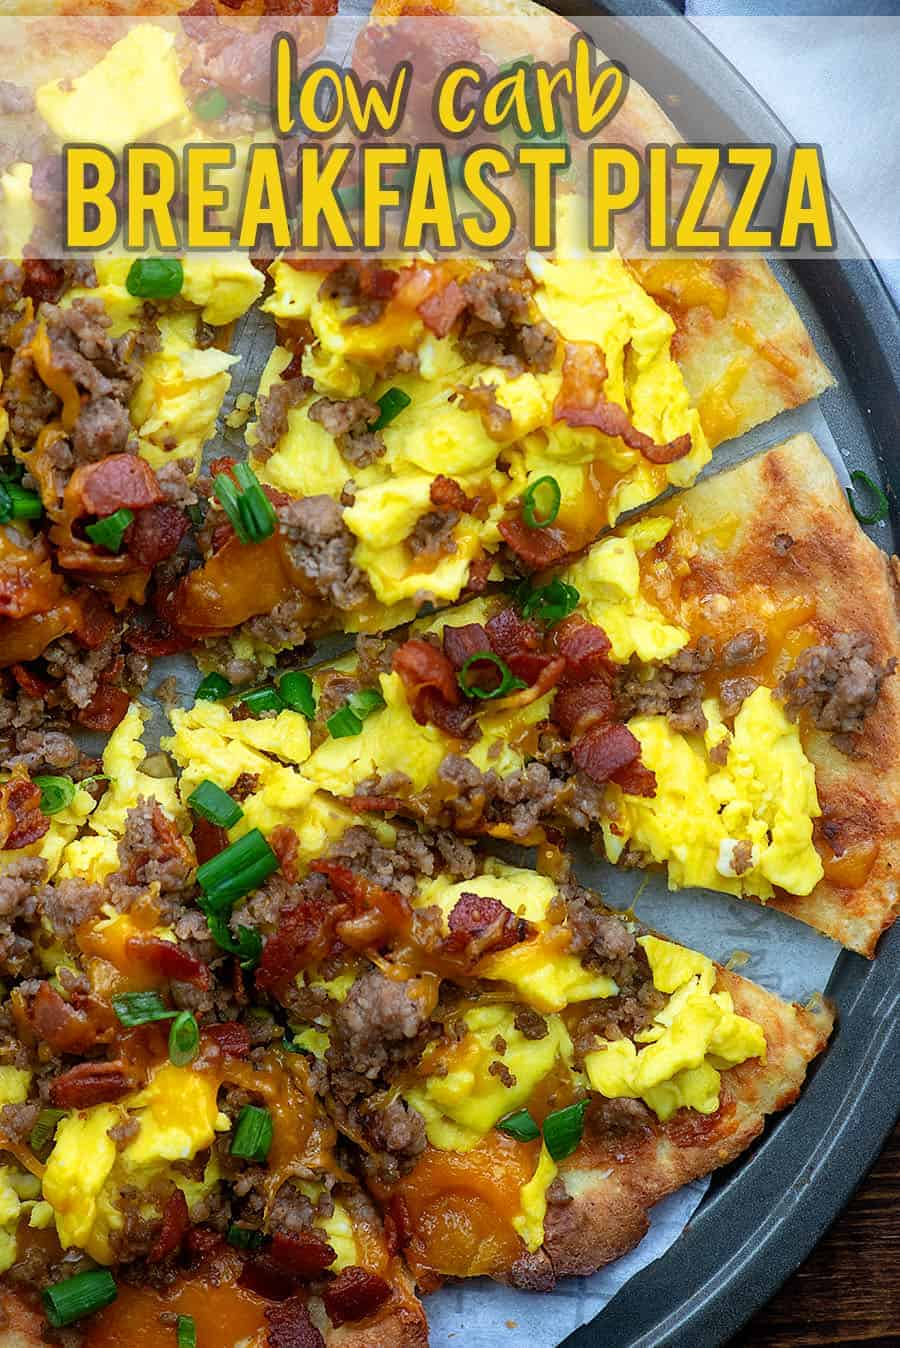 This breakfast pizza is low carb, packed with protein, and perfect for a keto diet! #lowcarb #keto #breakfast